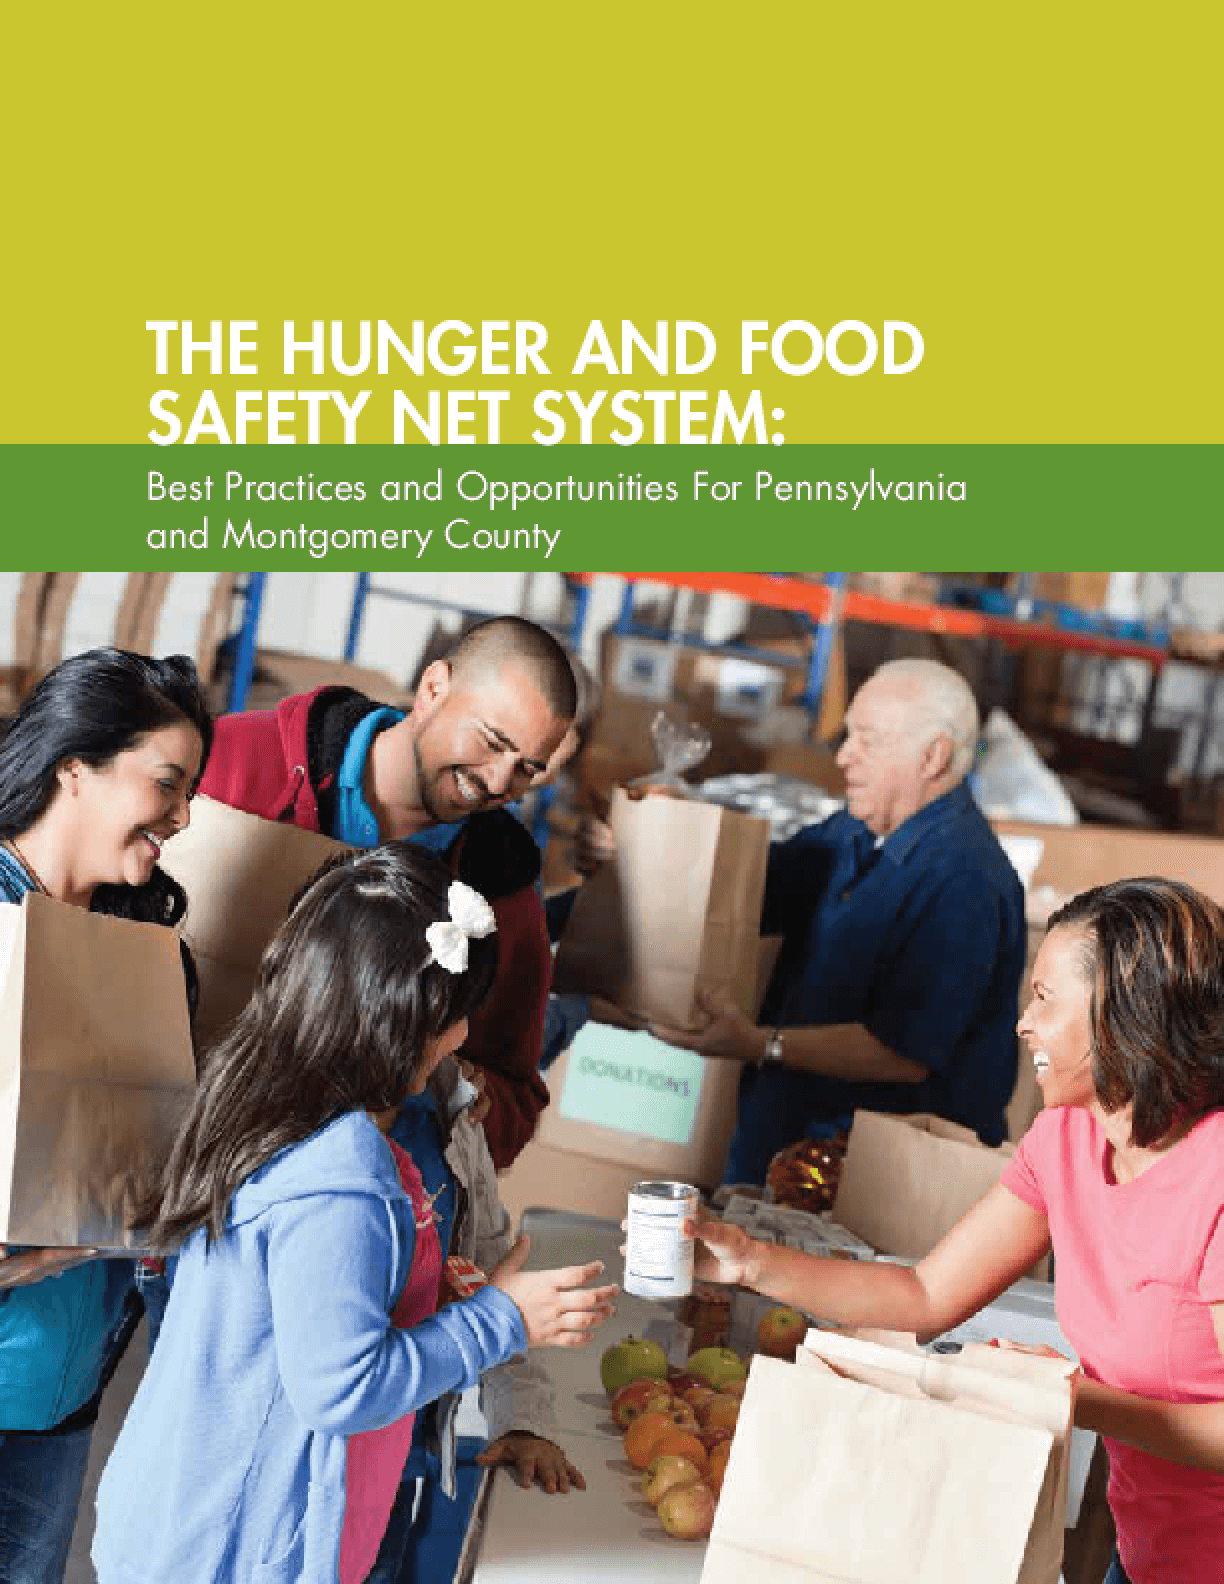 The Hunger and Food Safety Net System: Best Practices and Opportunities for Pennsylvania and Montgomery County